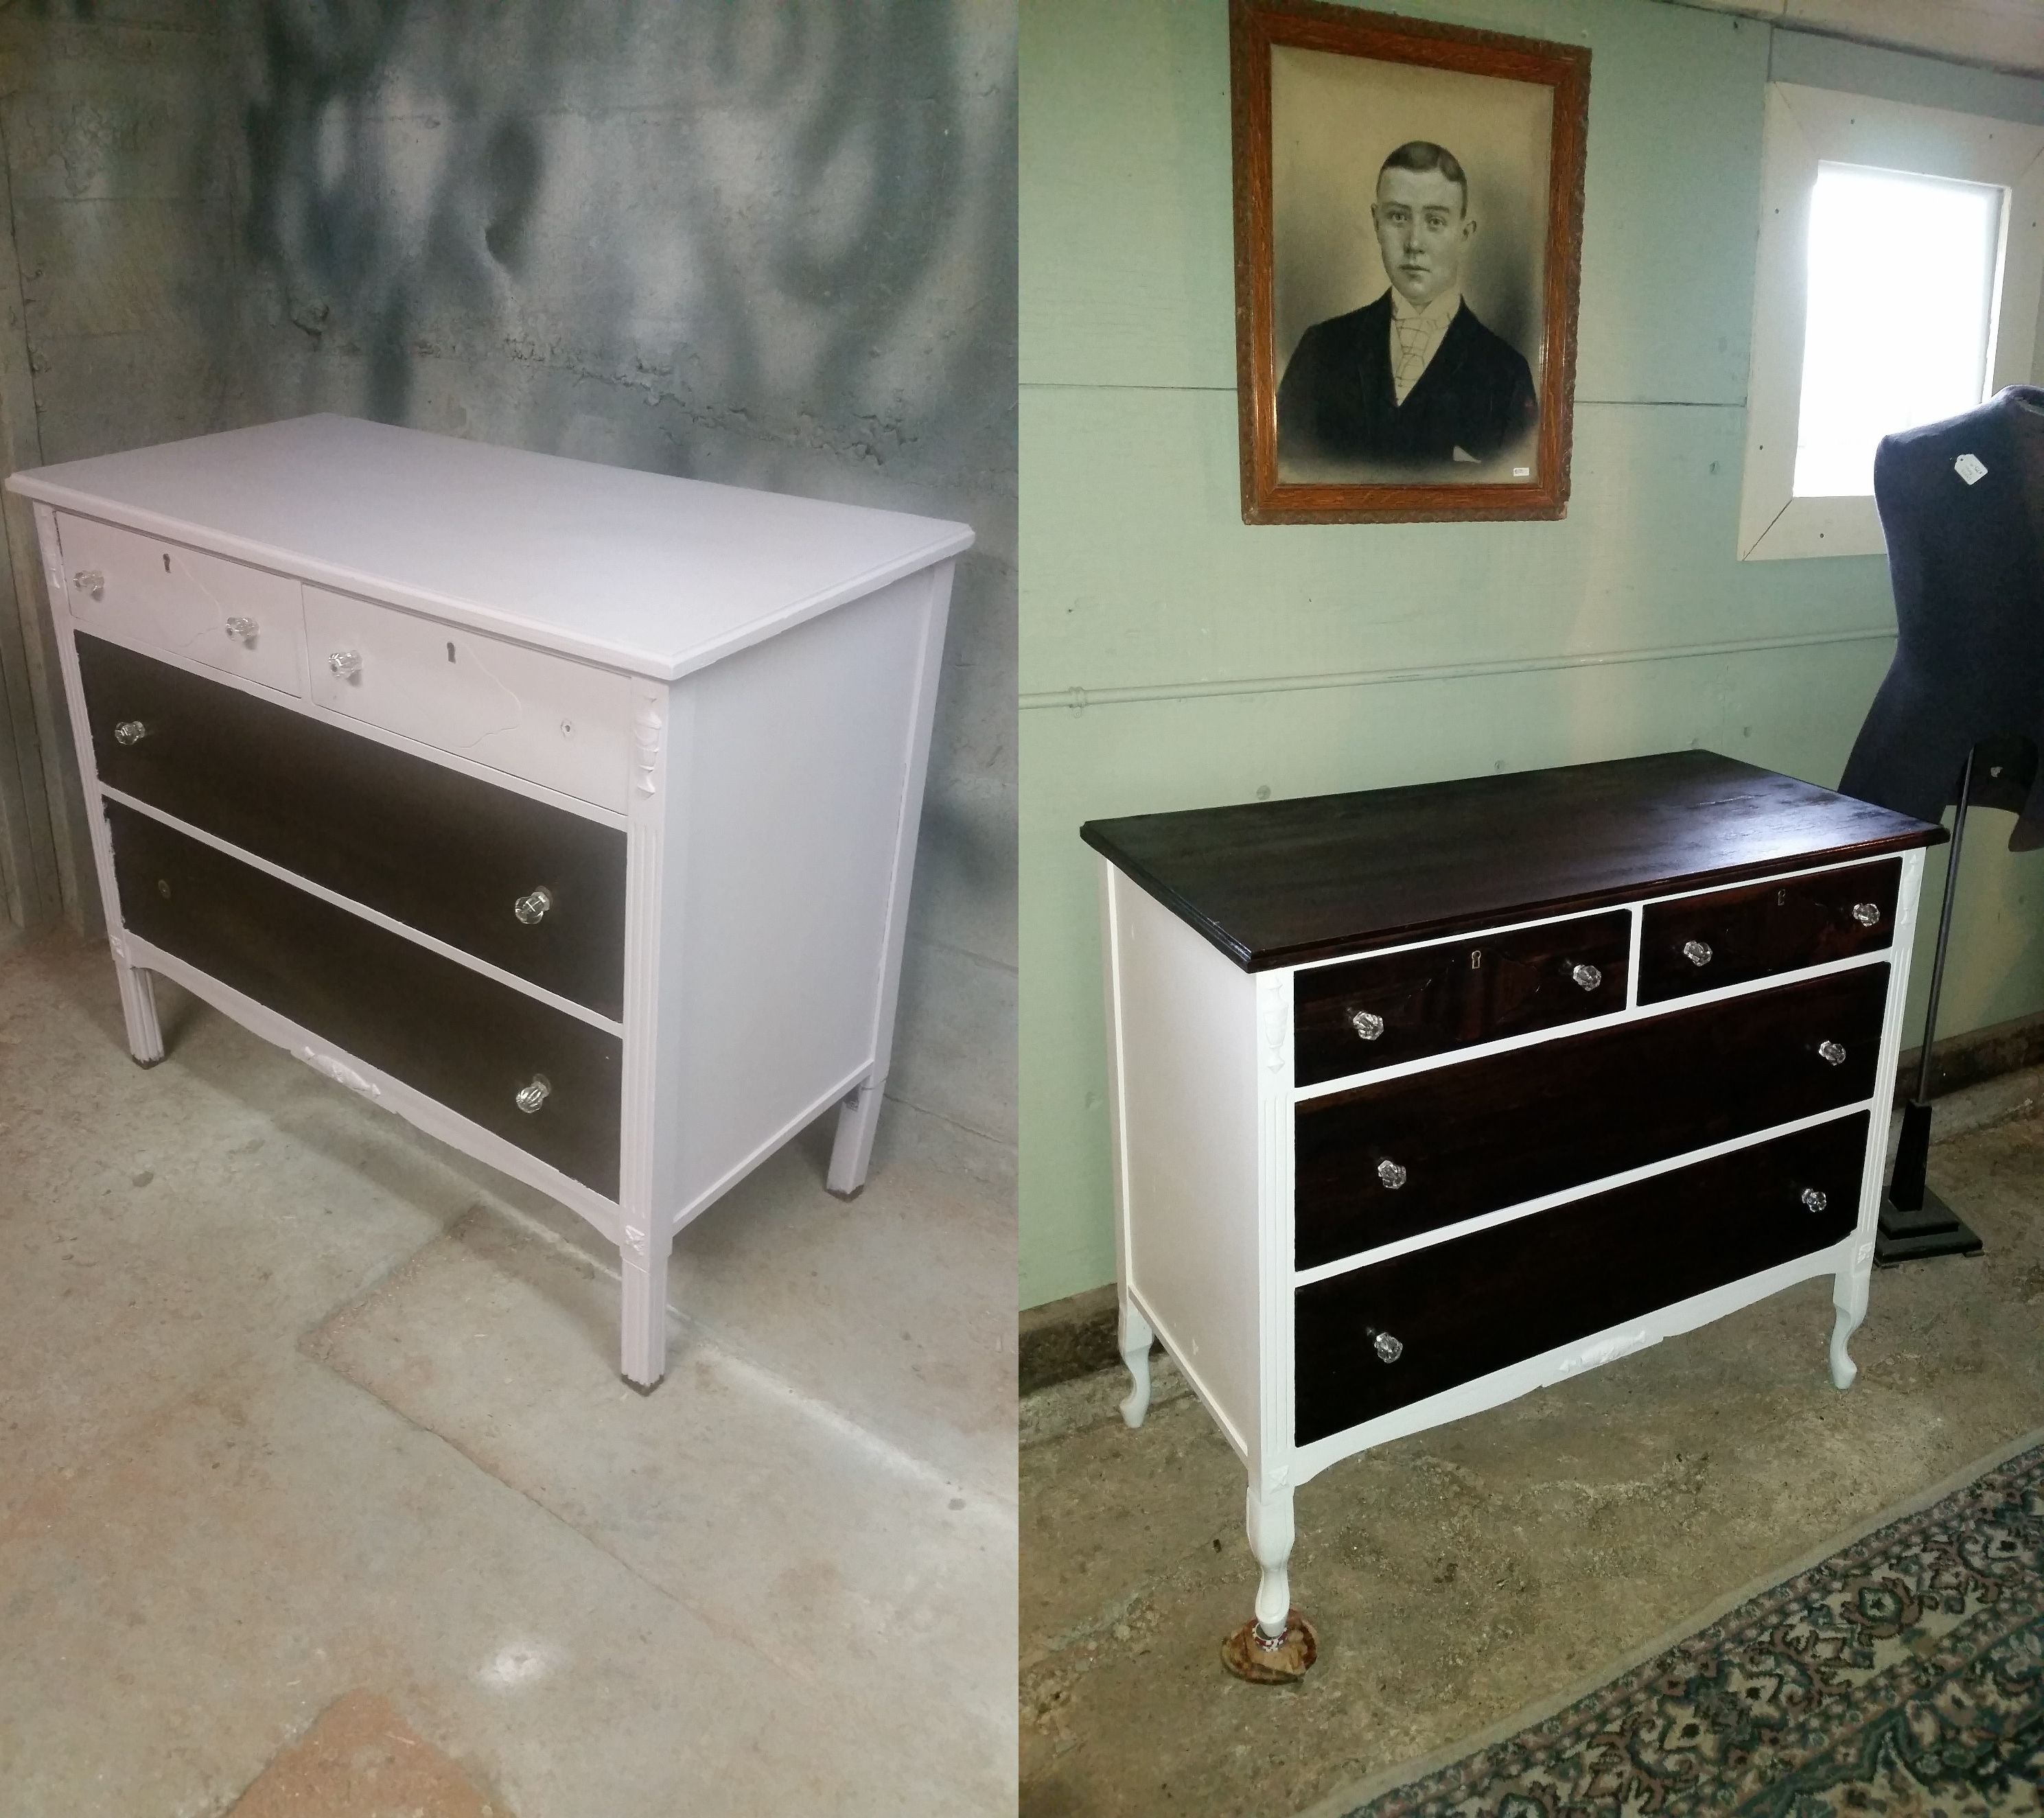 Refinished Antique Dresser That Had Been Previously Shabby Chic Already